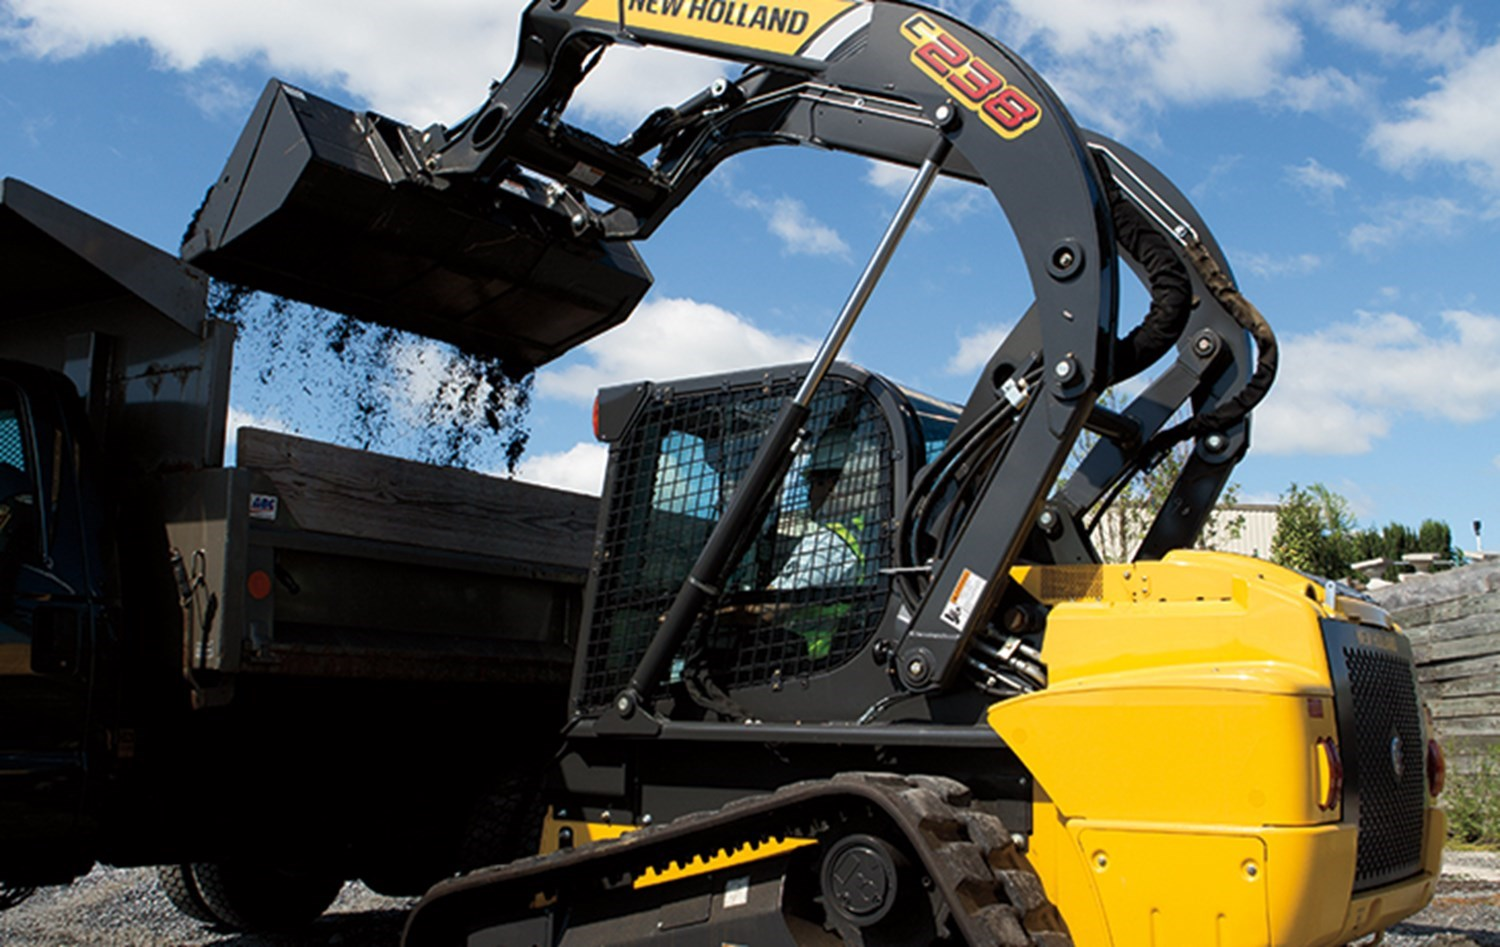 NEW HOLLAND COMPACT TRACK LOADER SERIES